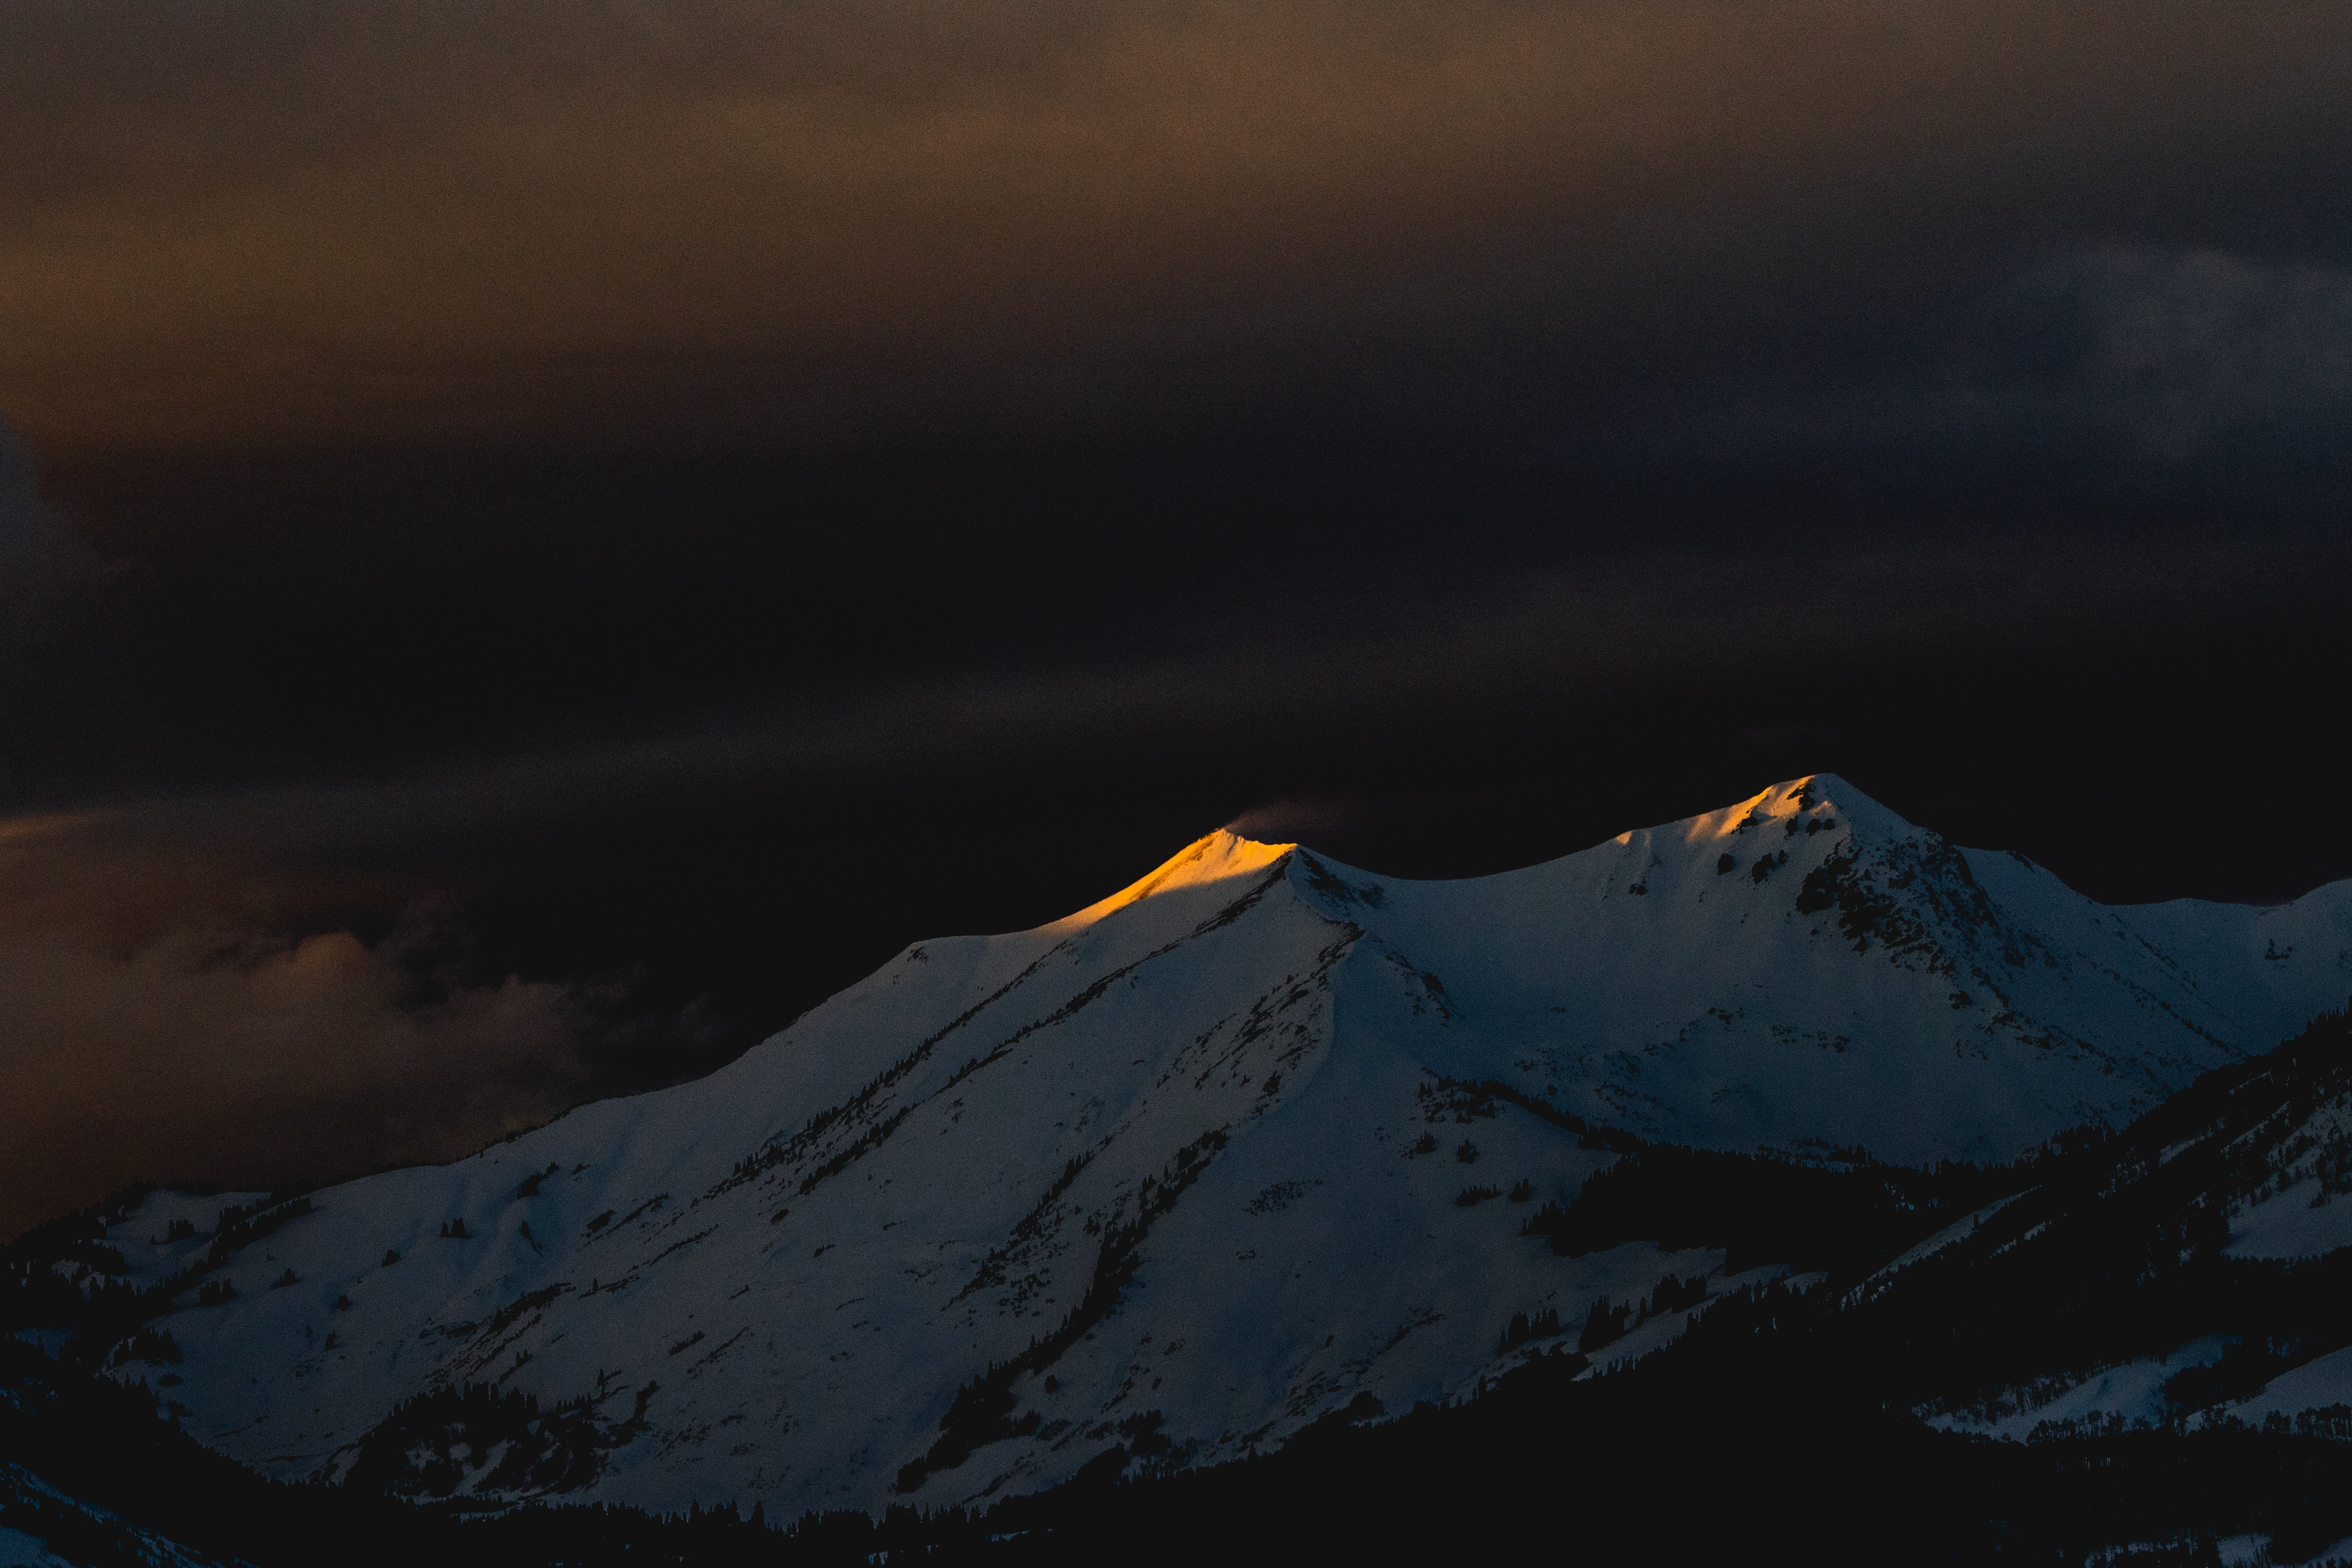 The last rays of sun on the peaks of a snowy mountain at dusk